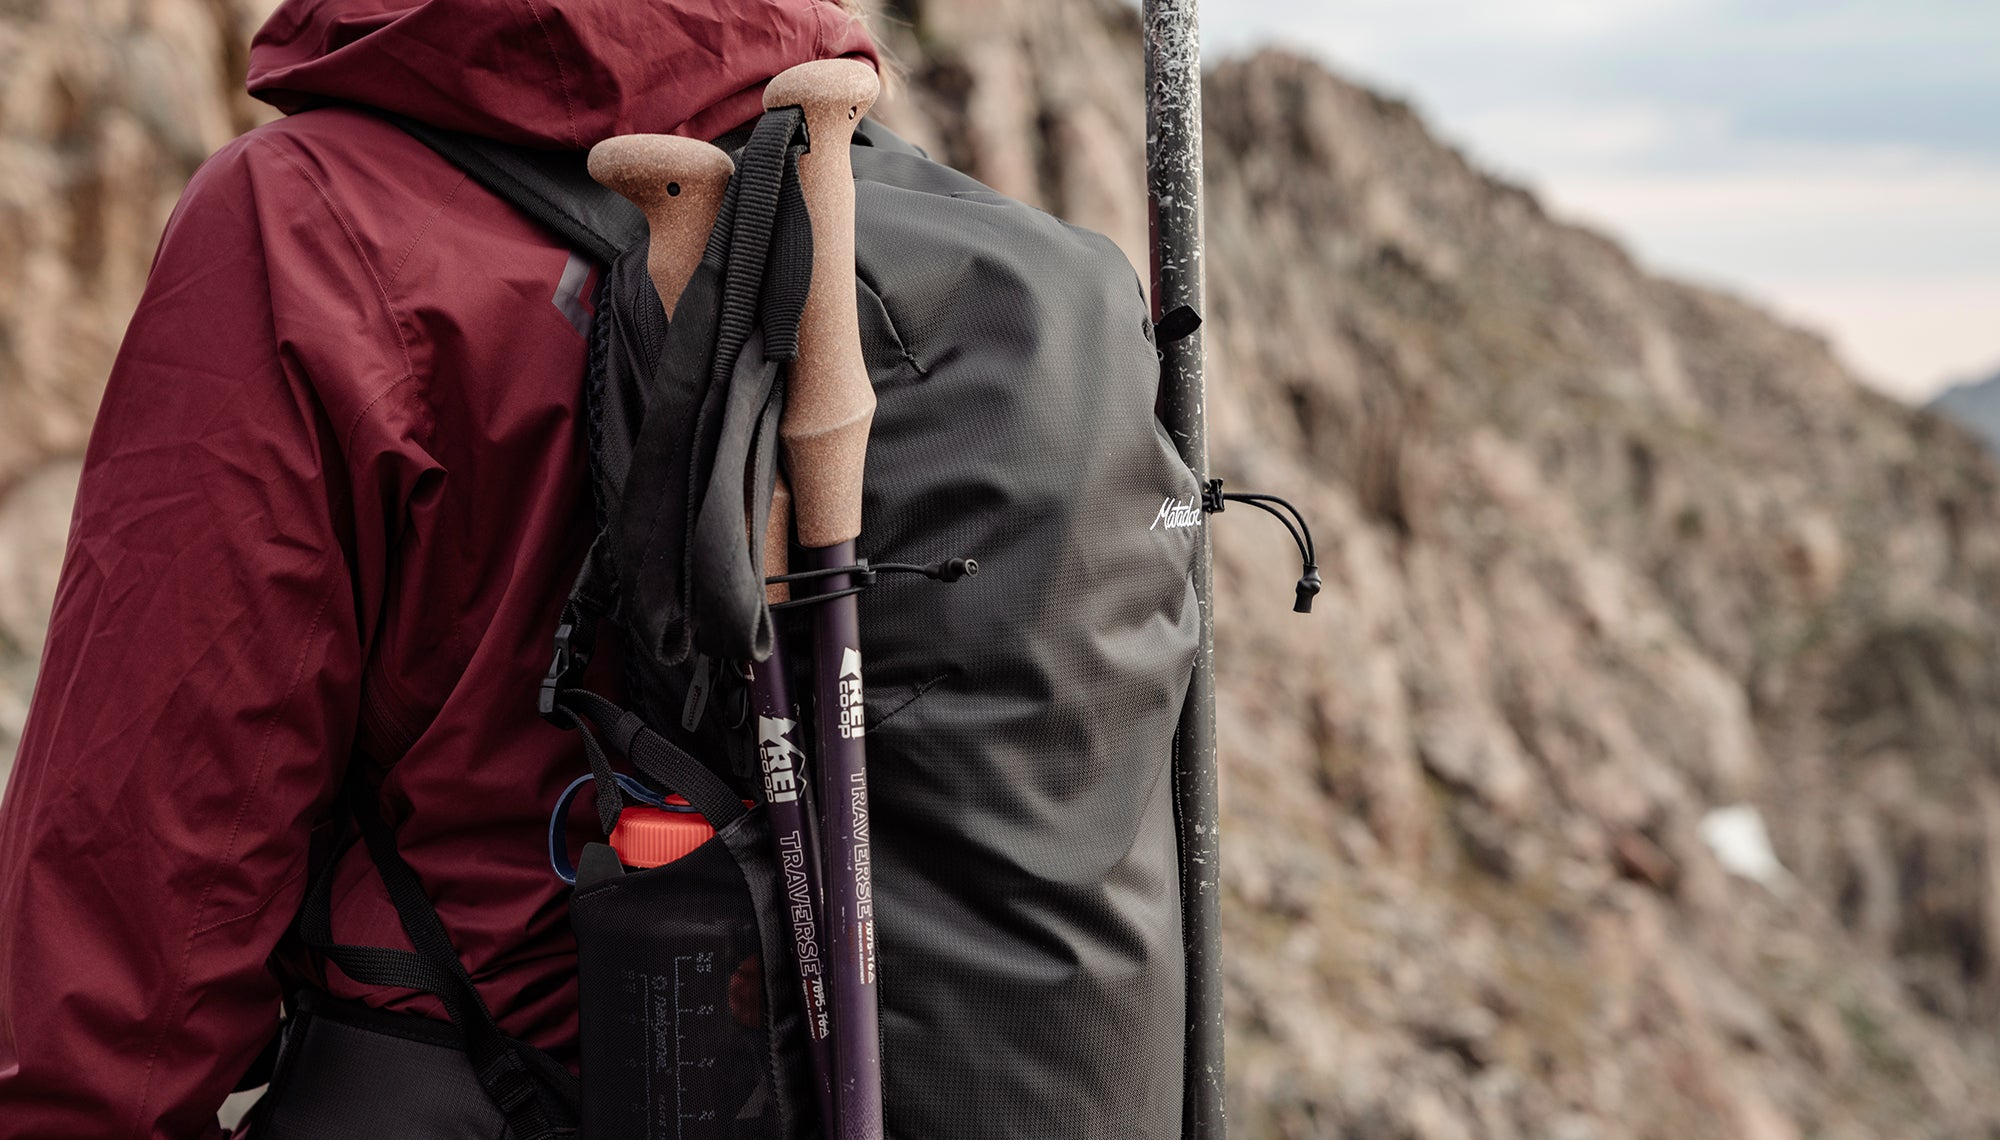 Person wearing a backpack with two trekking poles attached to it